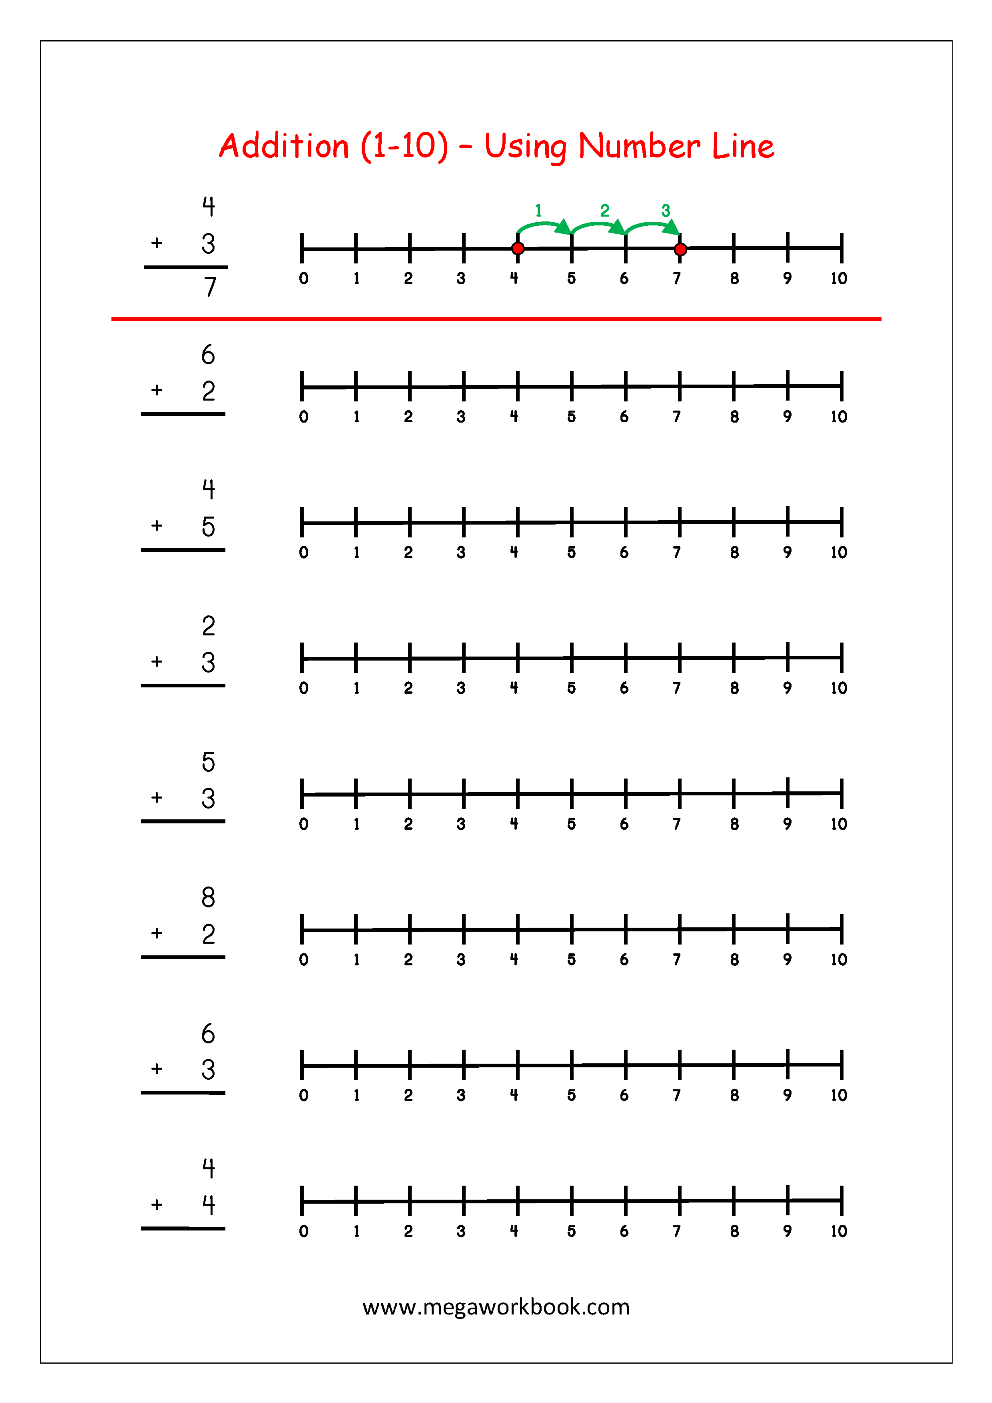 Worksheets Number Line Addition Worksheets worksheets addition using number line httpwww megaworkbook our free printable would teach them various techniques add objects line